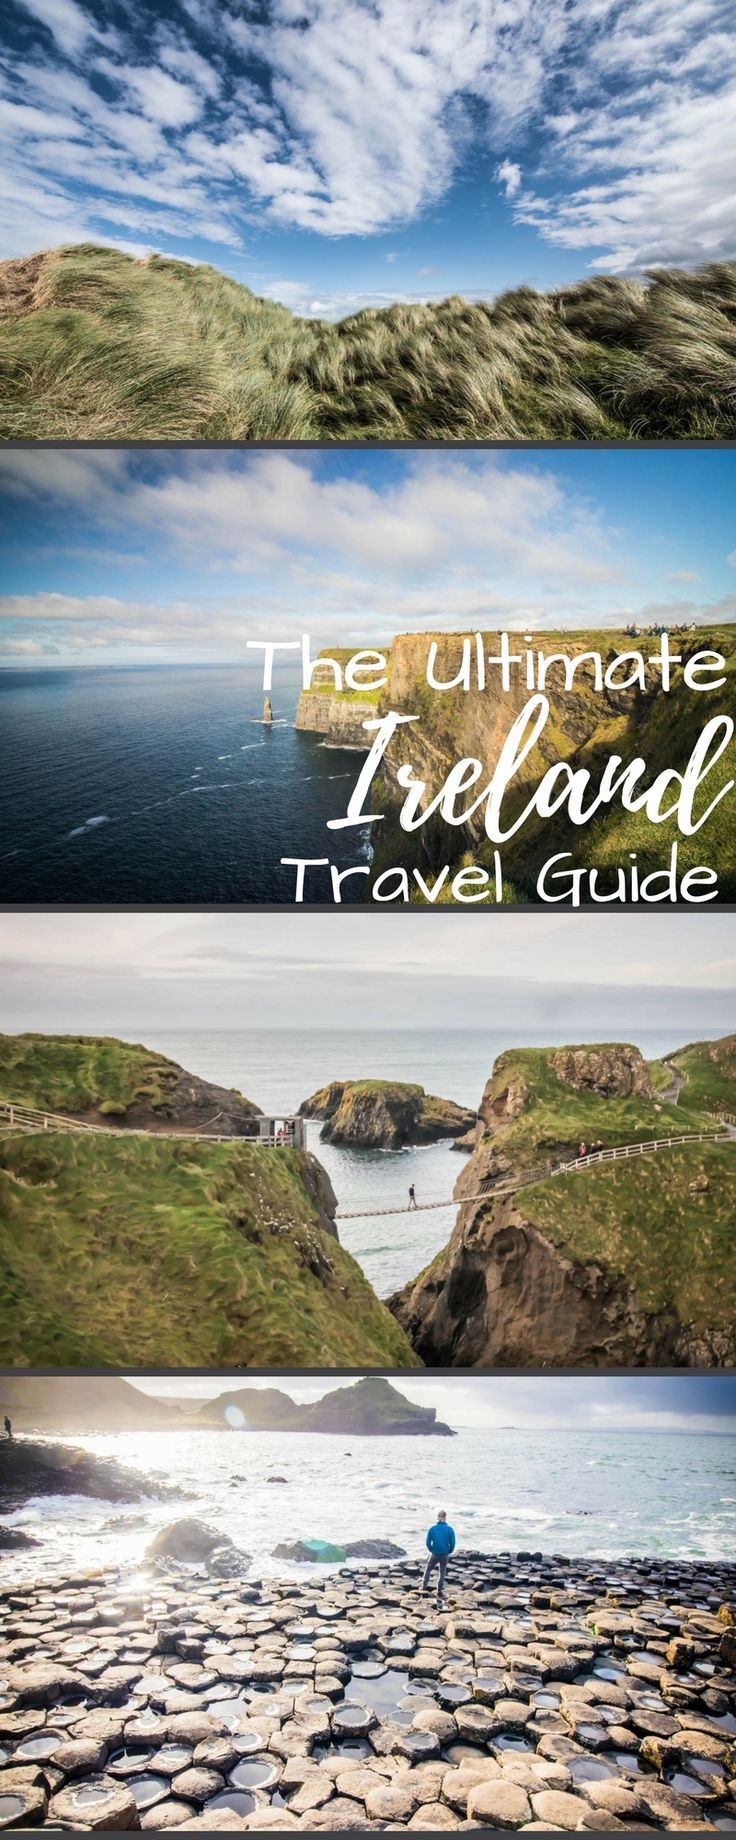 The ultimate Ireland travel guide for you next vacation. What to wear, things to do, honeymoon ideas and more! Including Dublin, Cork, Galway, Belfast, Killarney, and the Cliffs of Moher!